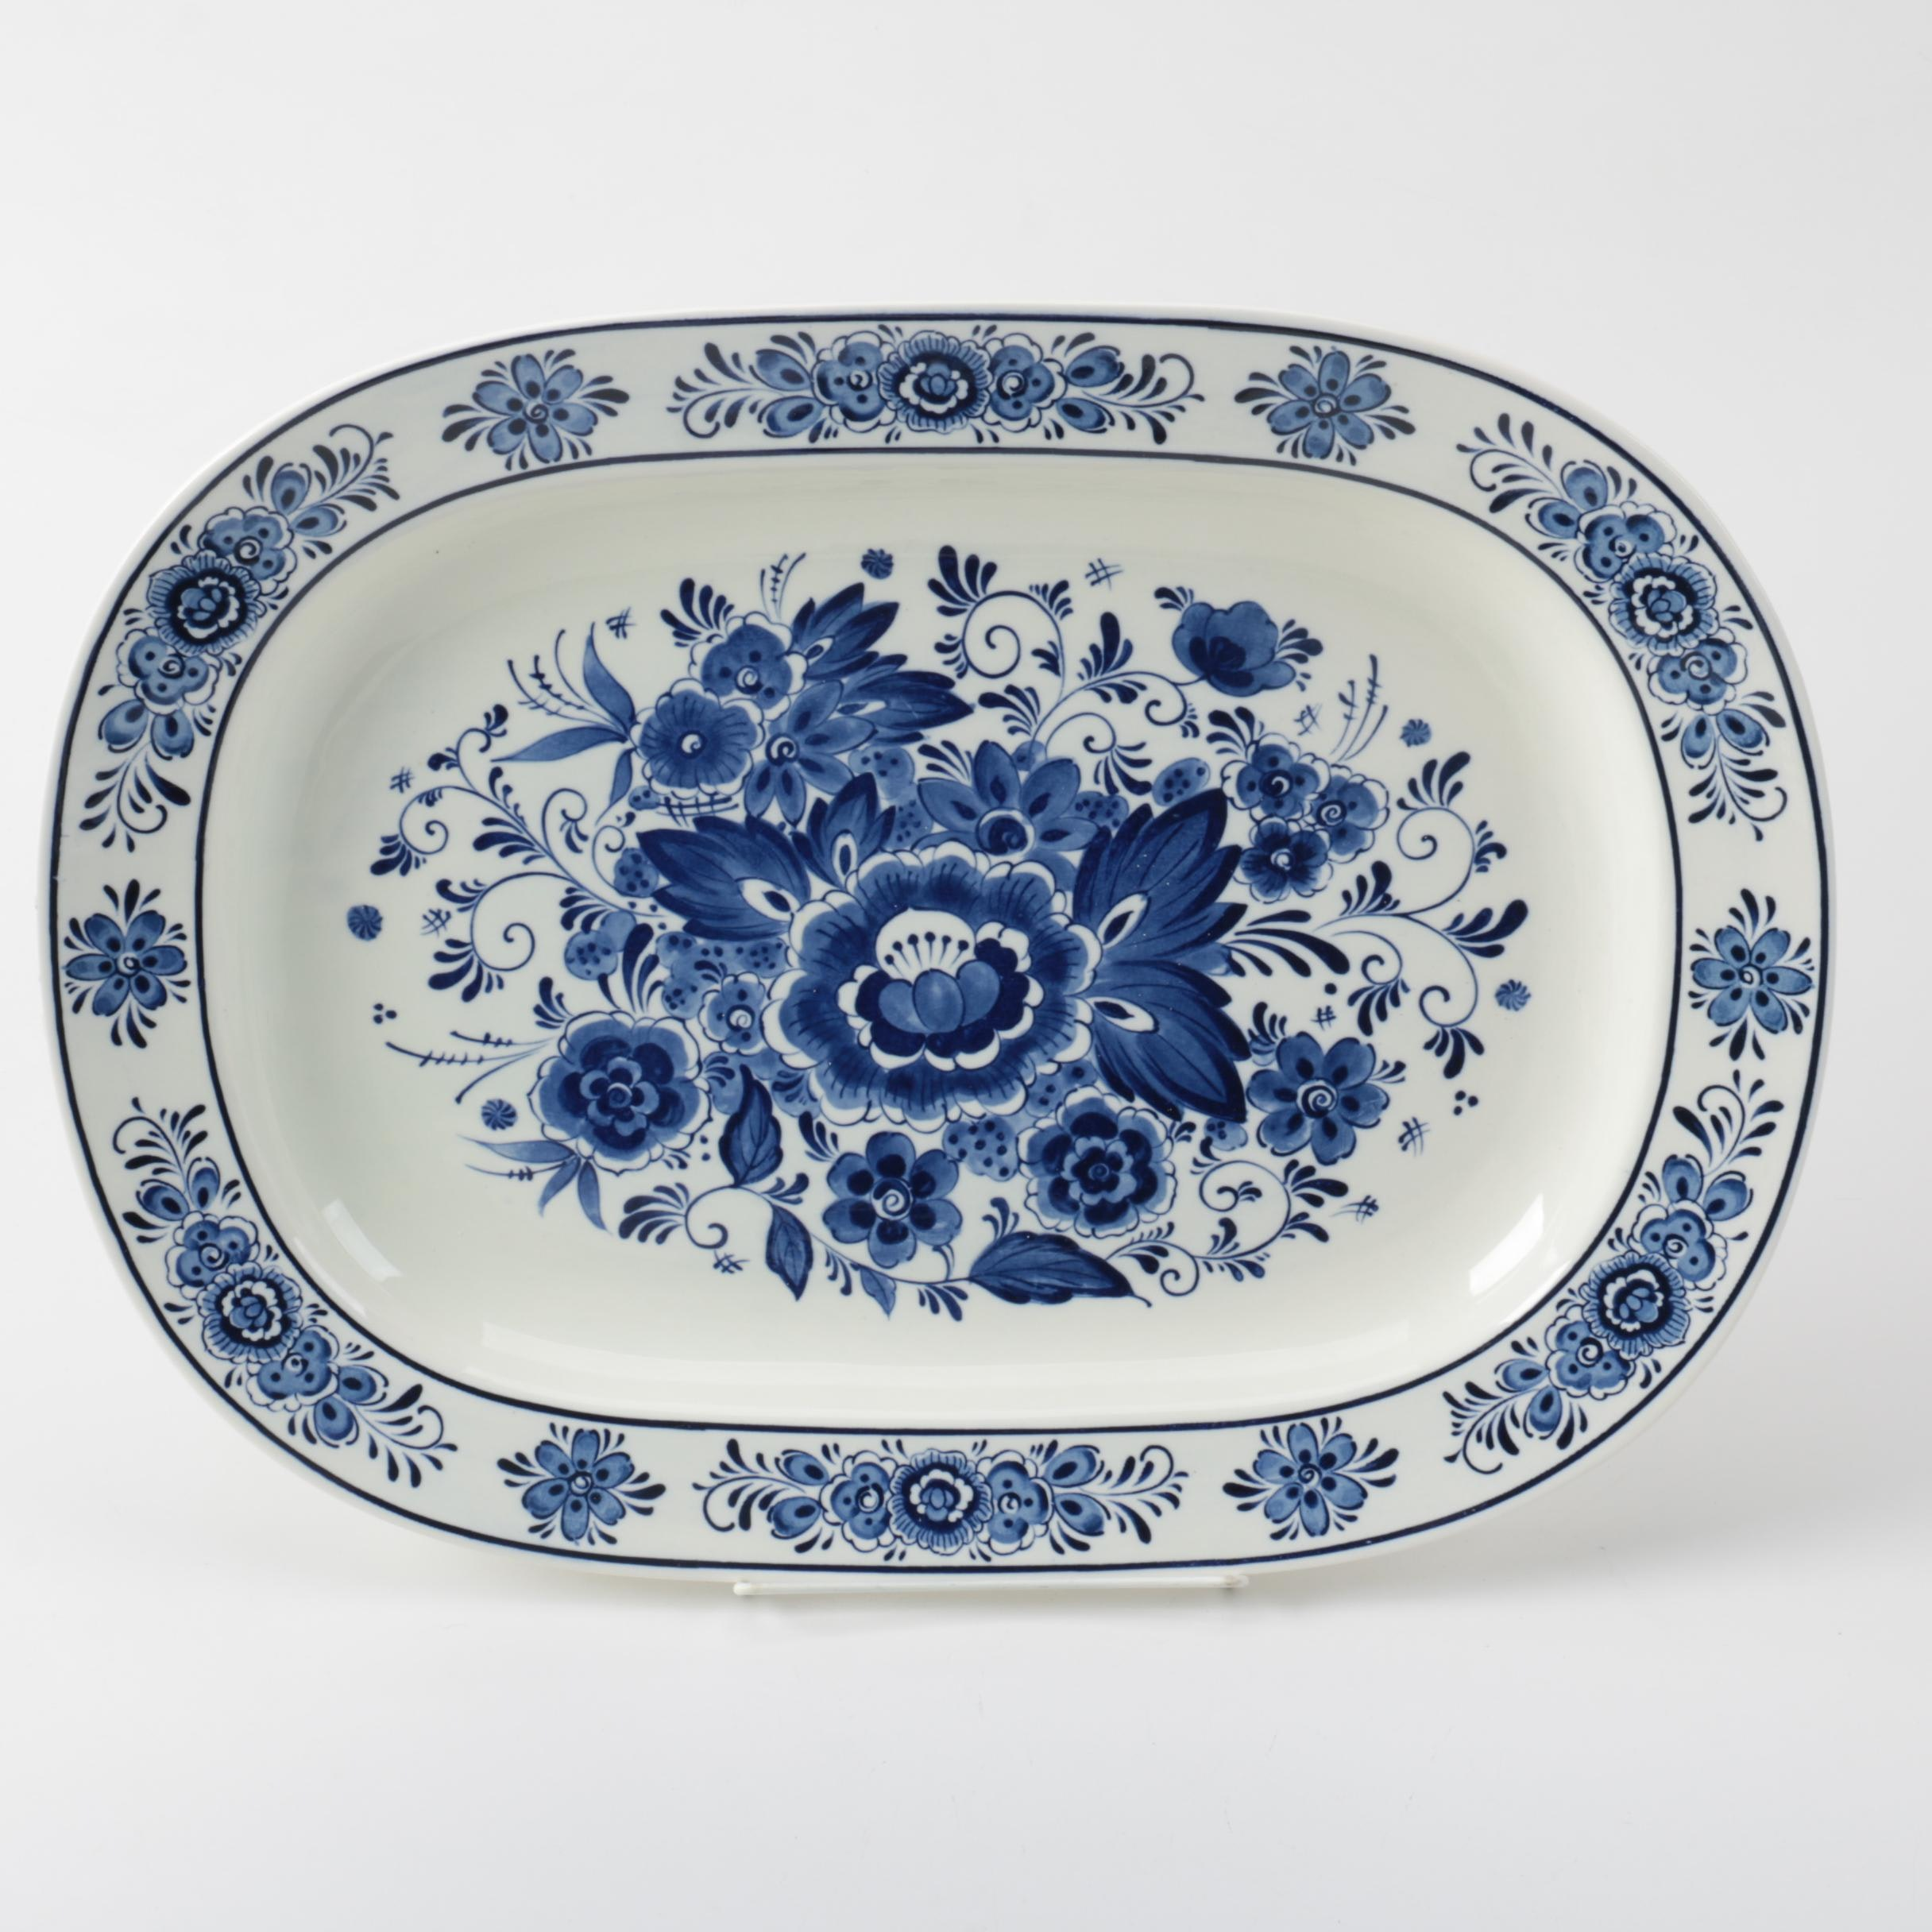 Delft Style Ceramic Serving Tray